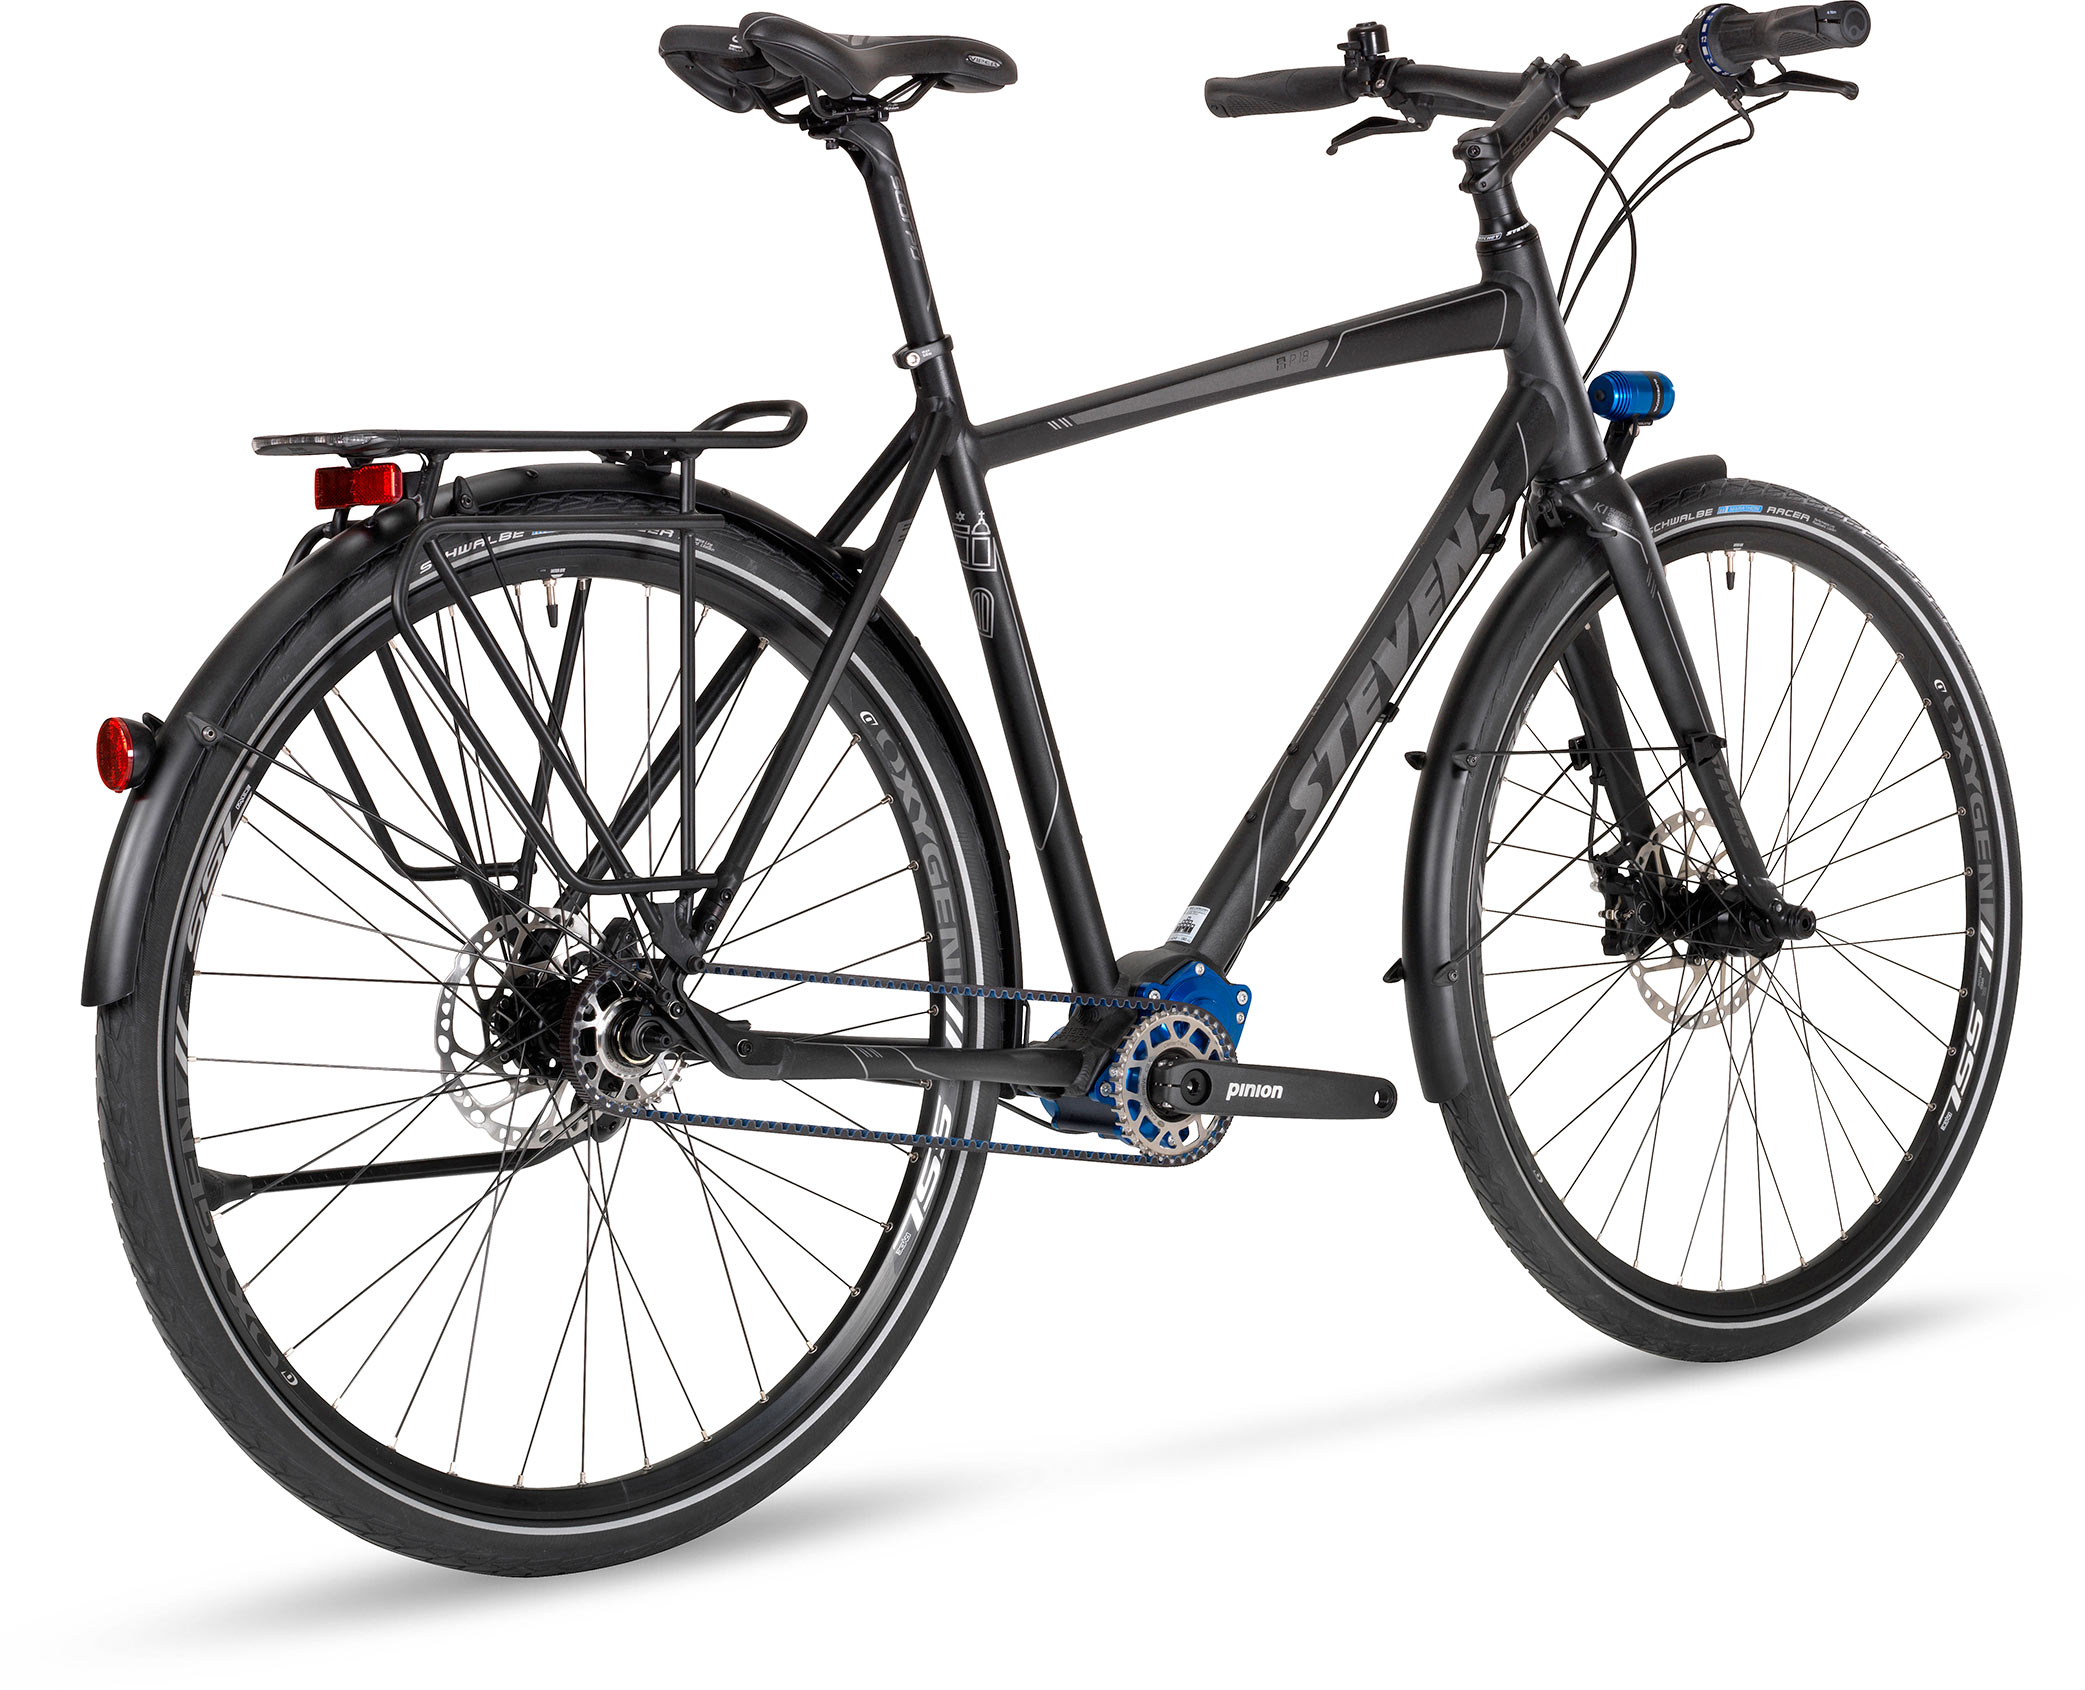 Buyers Guide 10 Best Gates Carbon Belt Drive Bikes